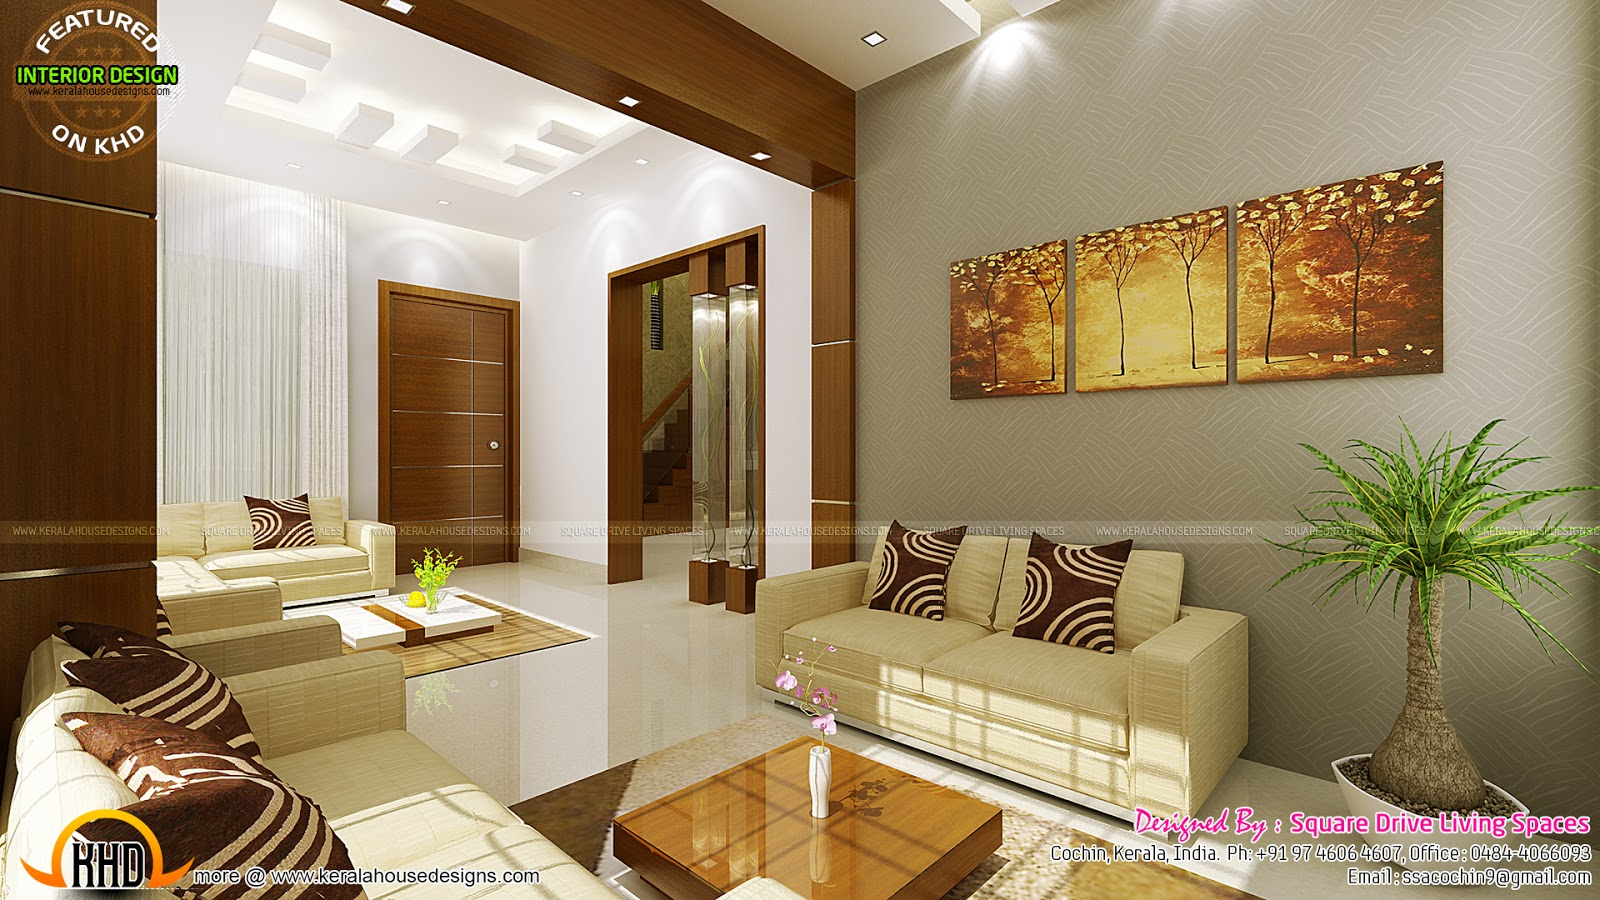 Contemporary kitchen dining and living room kerala home for Home interior design ideas uk